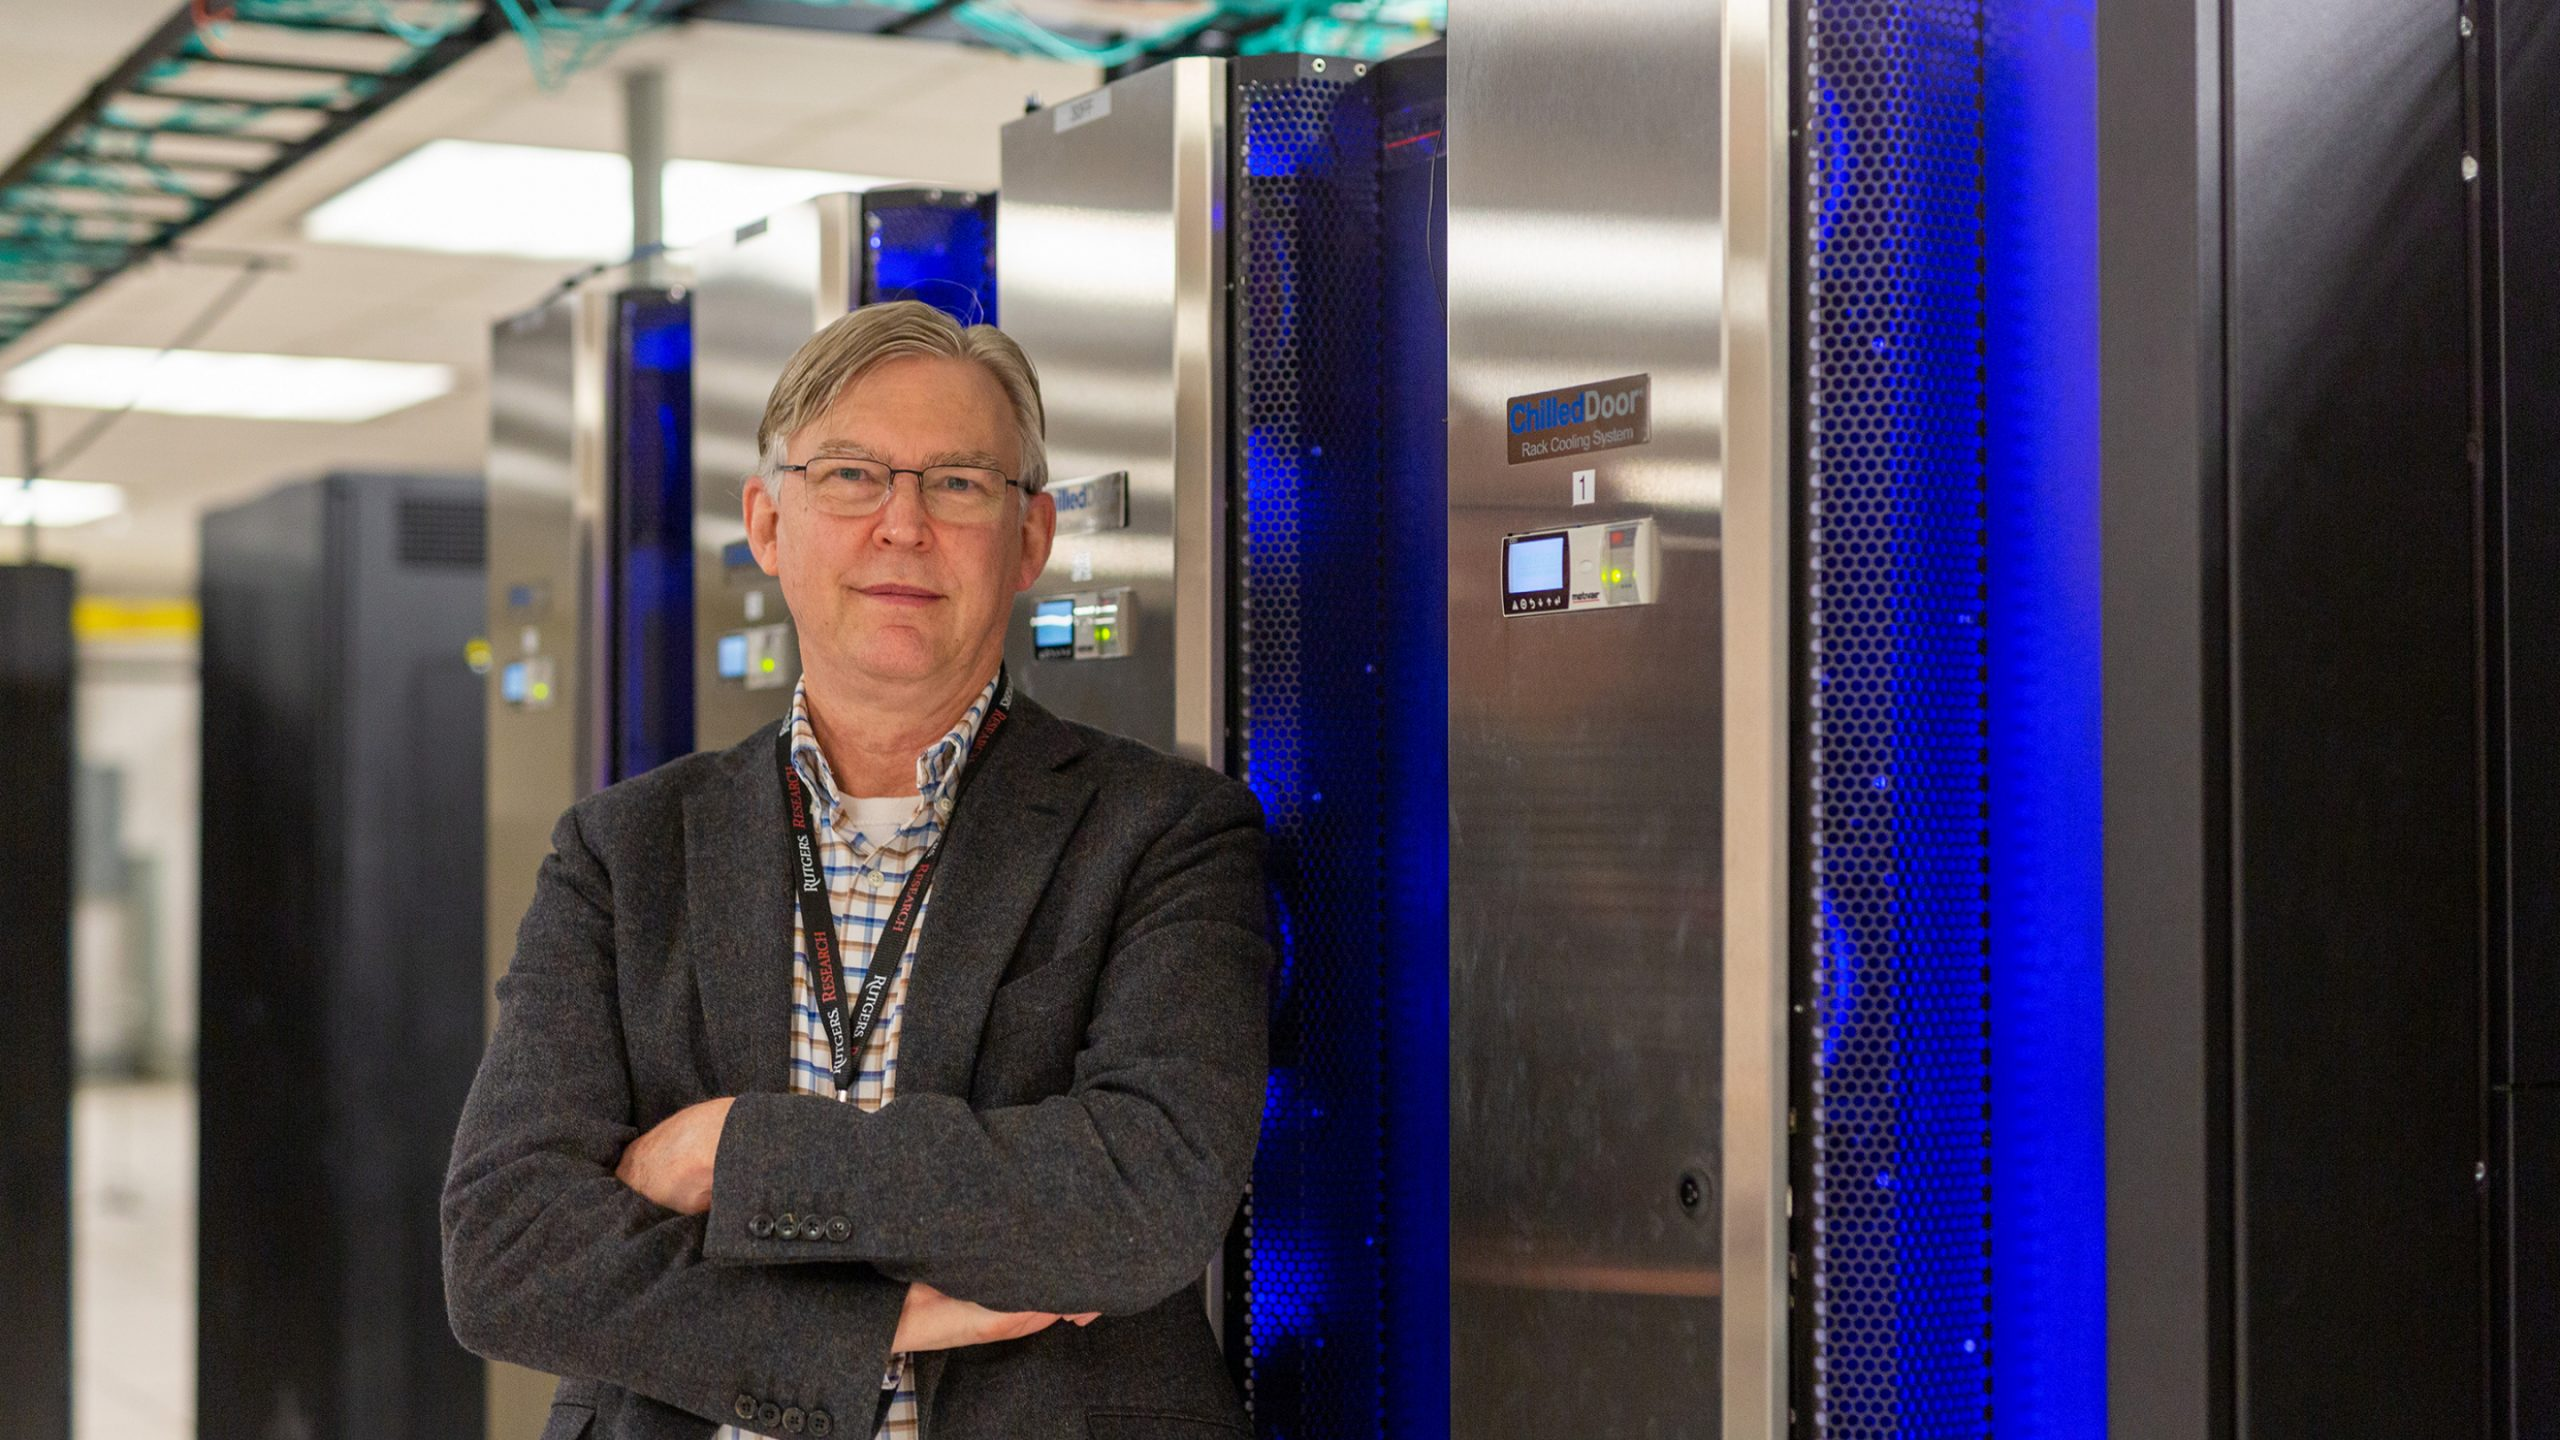 Barr von Oehsen, associate vice president of Rutgers' Office of Advanced Research Computing in front of the Amarel supercomputer which contributed to a historic crowdsourced computing effort to search for COVID-19 treatments